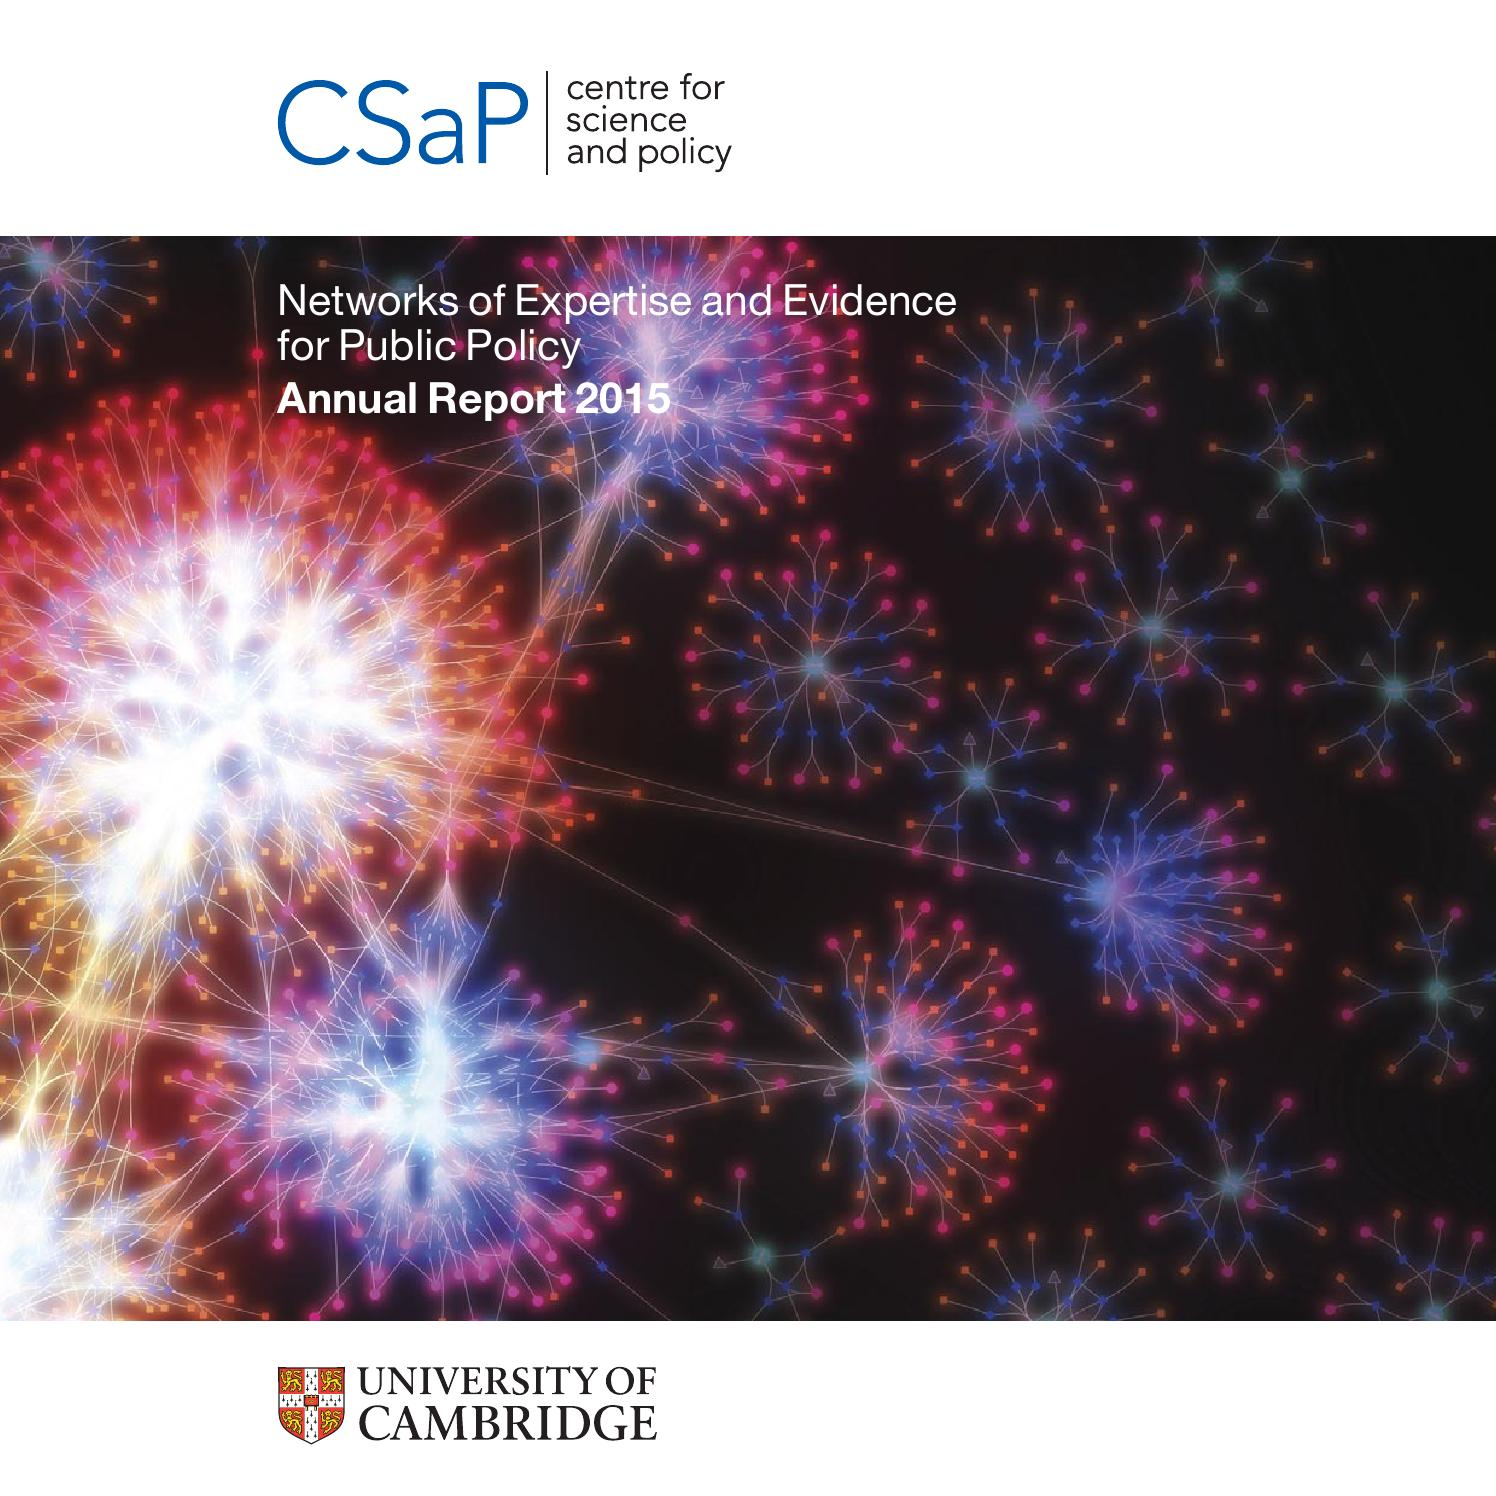 Csap 2015 annual report by Centre for Science and Policy - issuu